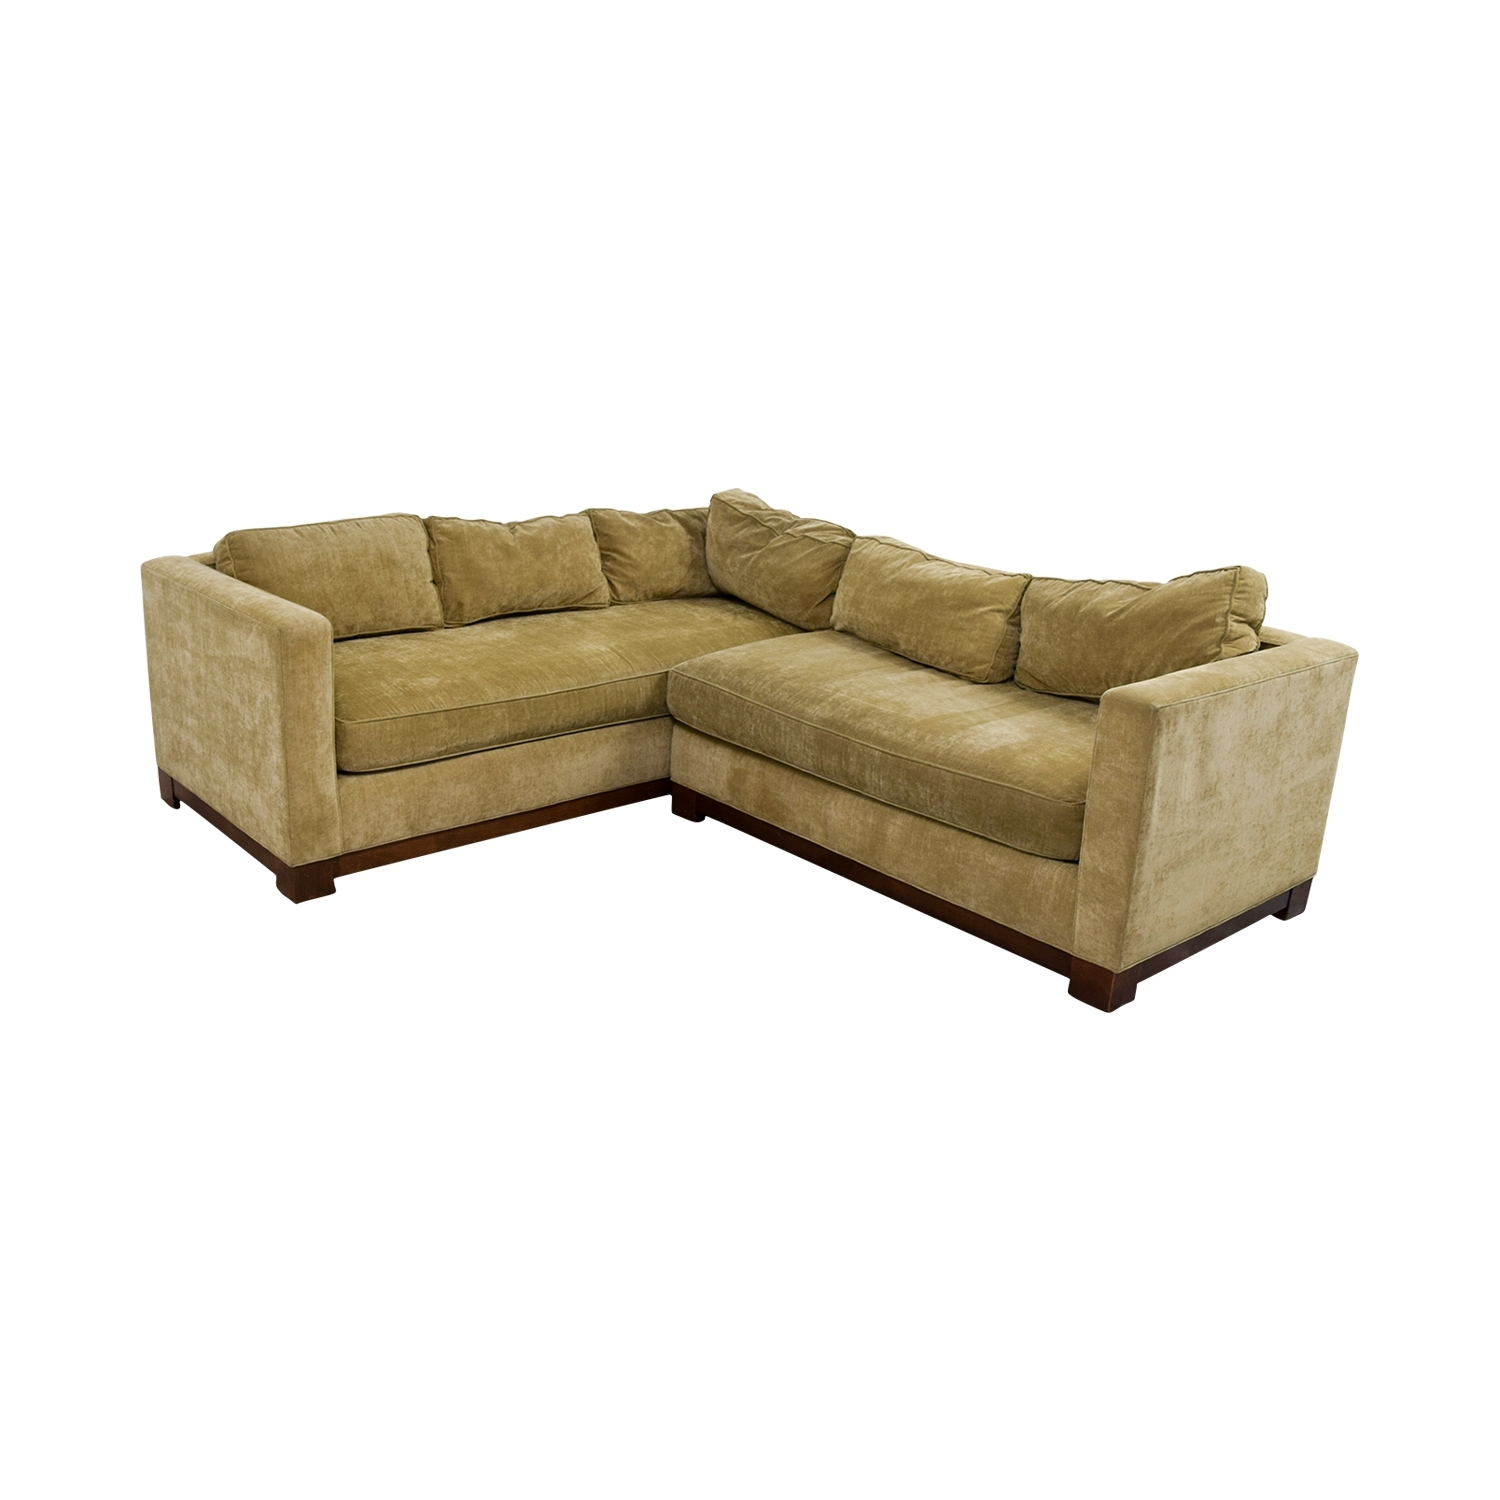 84% Off – Mitchell Gold + Bob Williams Mitchell Gold + Bob Williams In Gold Sectional Sofas (View 9 of 10)